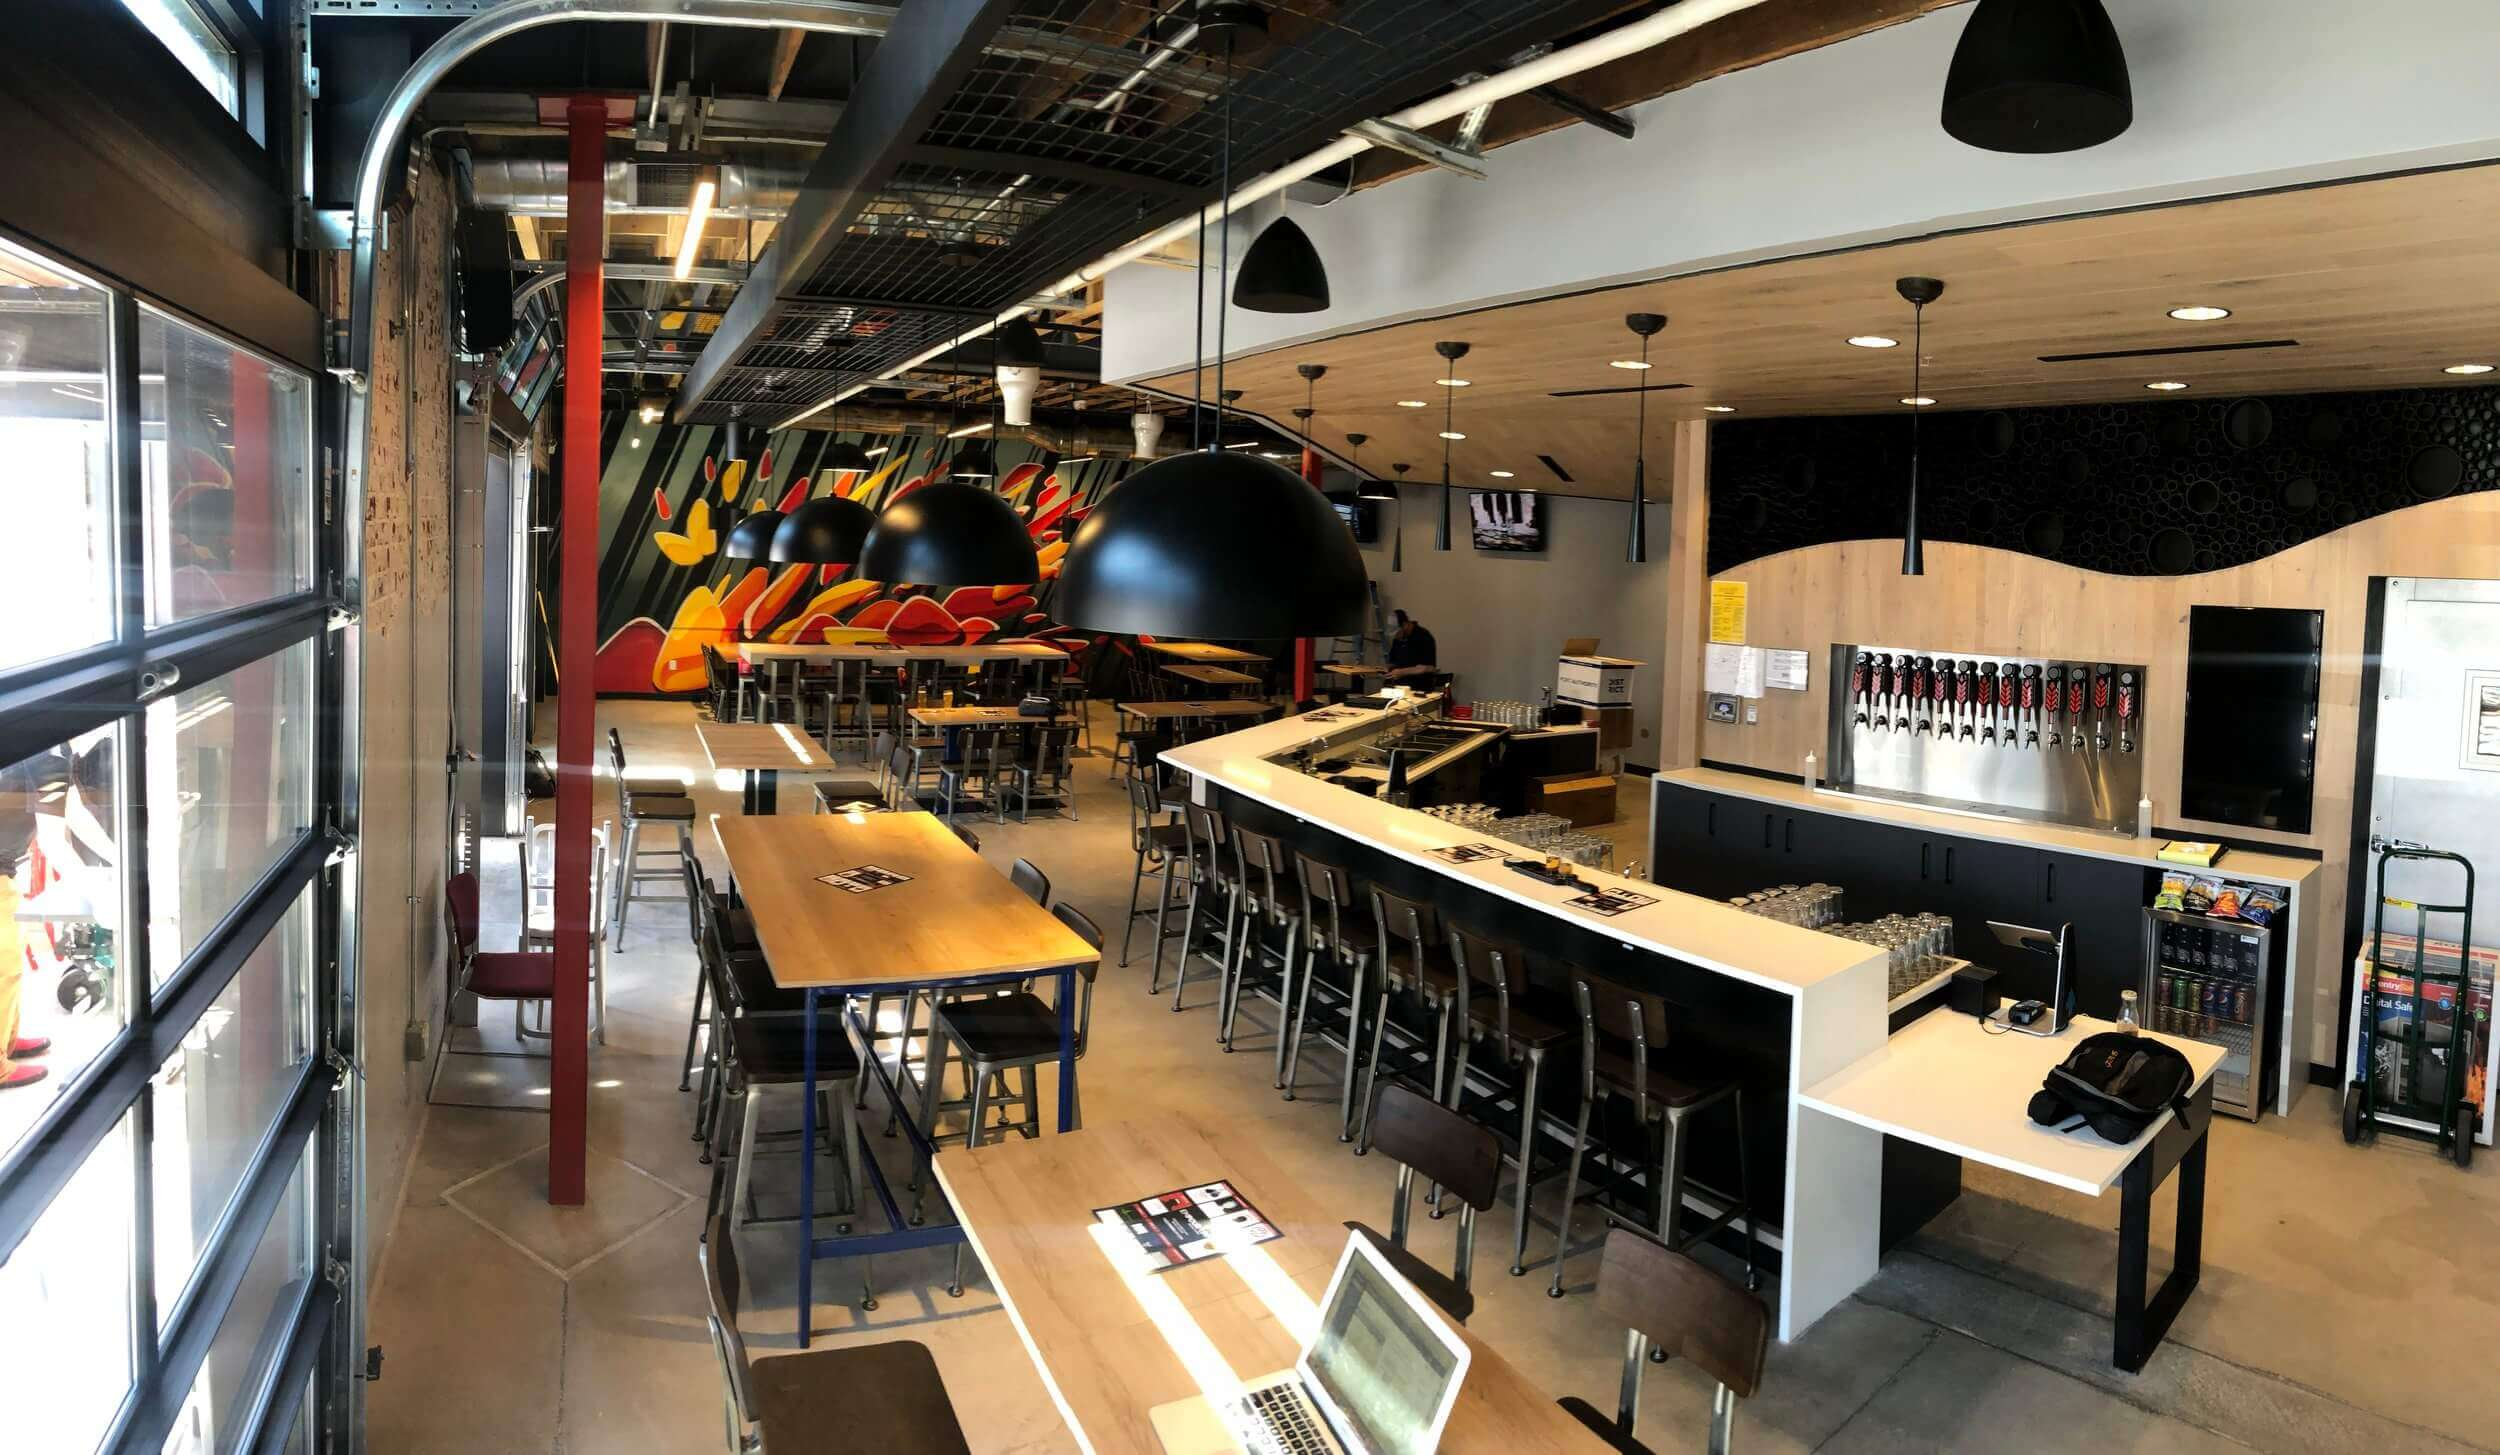 Inside the taproom at The Empourium Brewing Company in Denver, Colorado